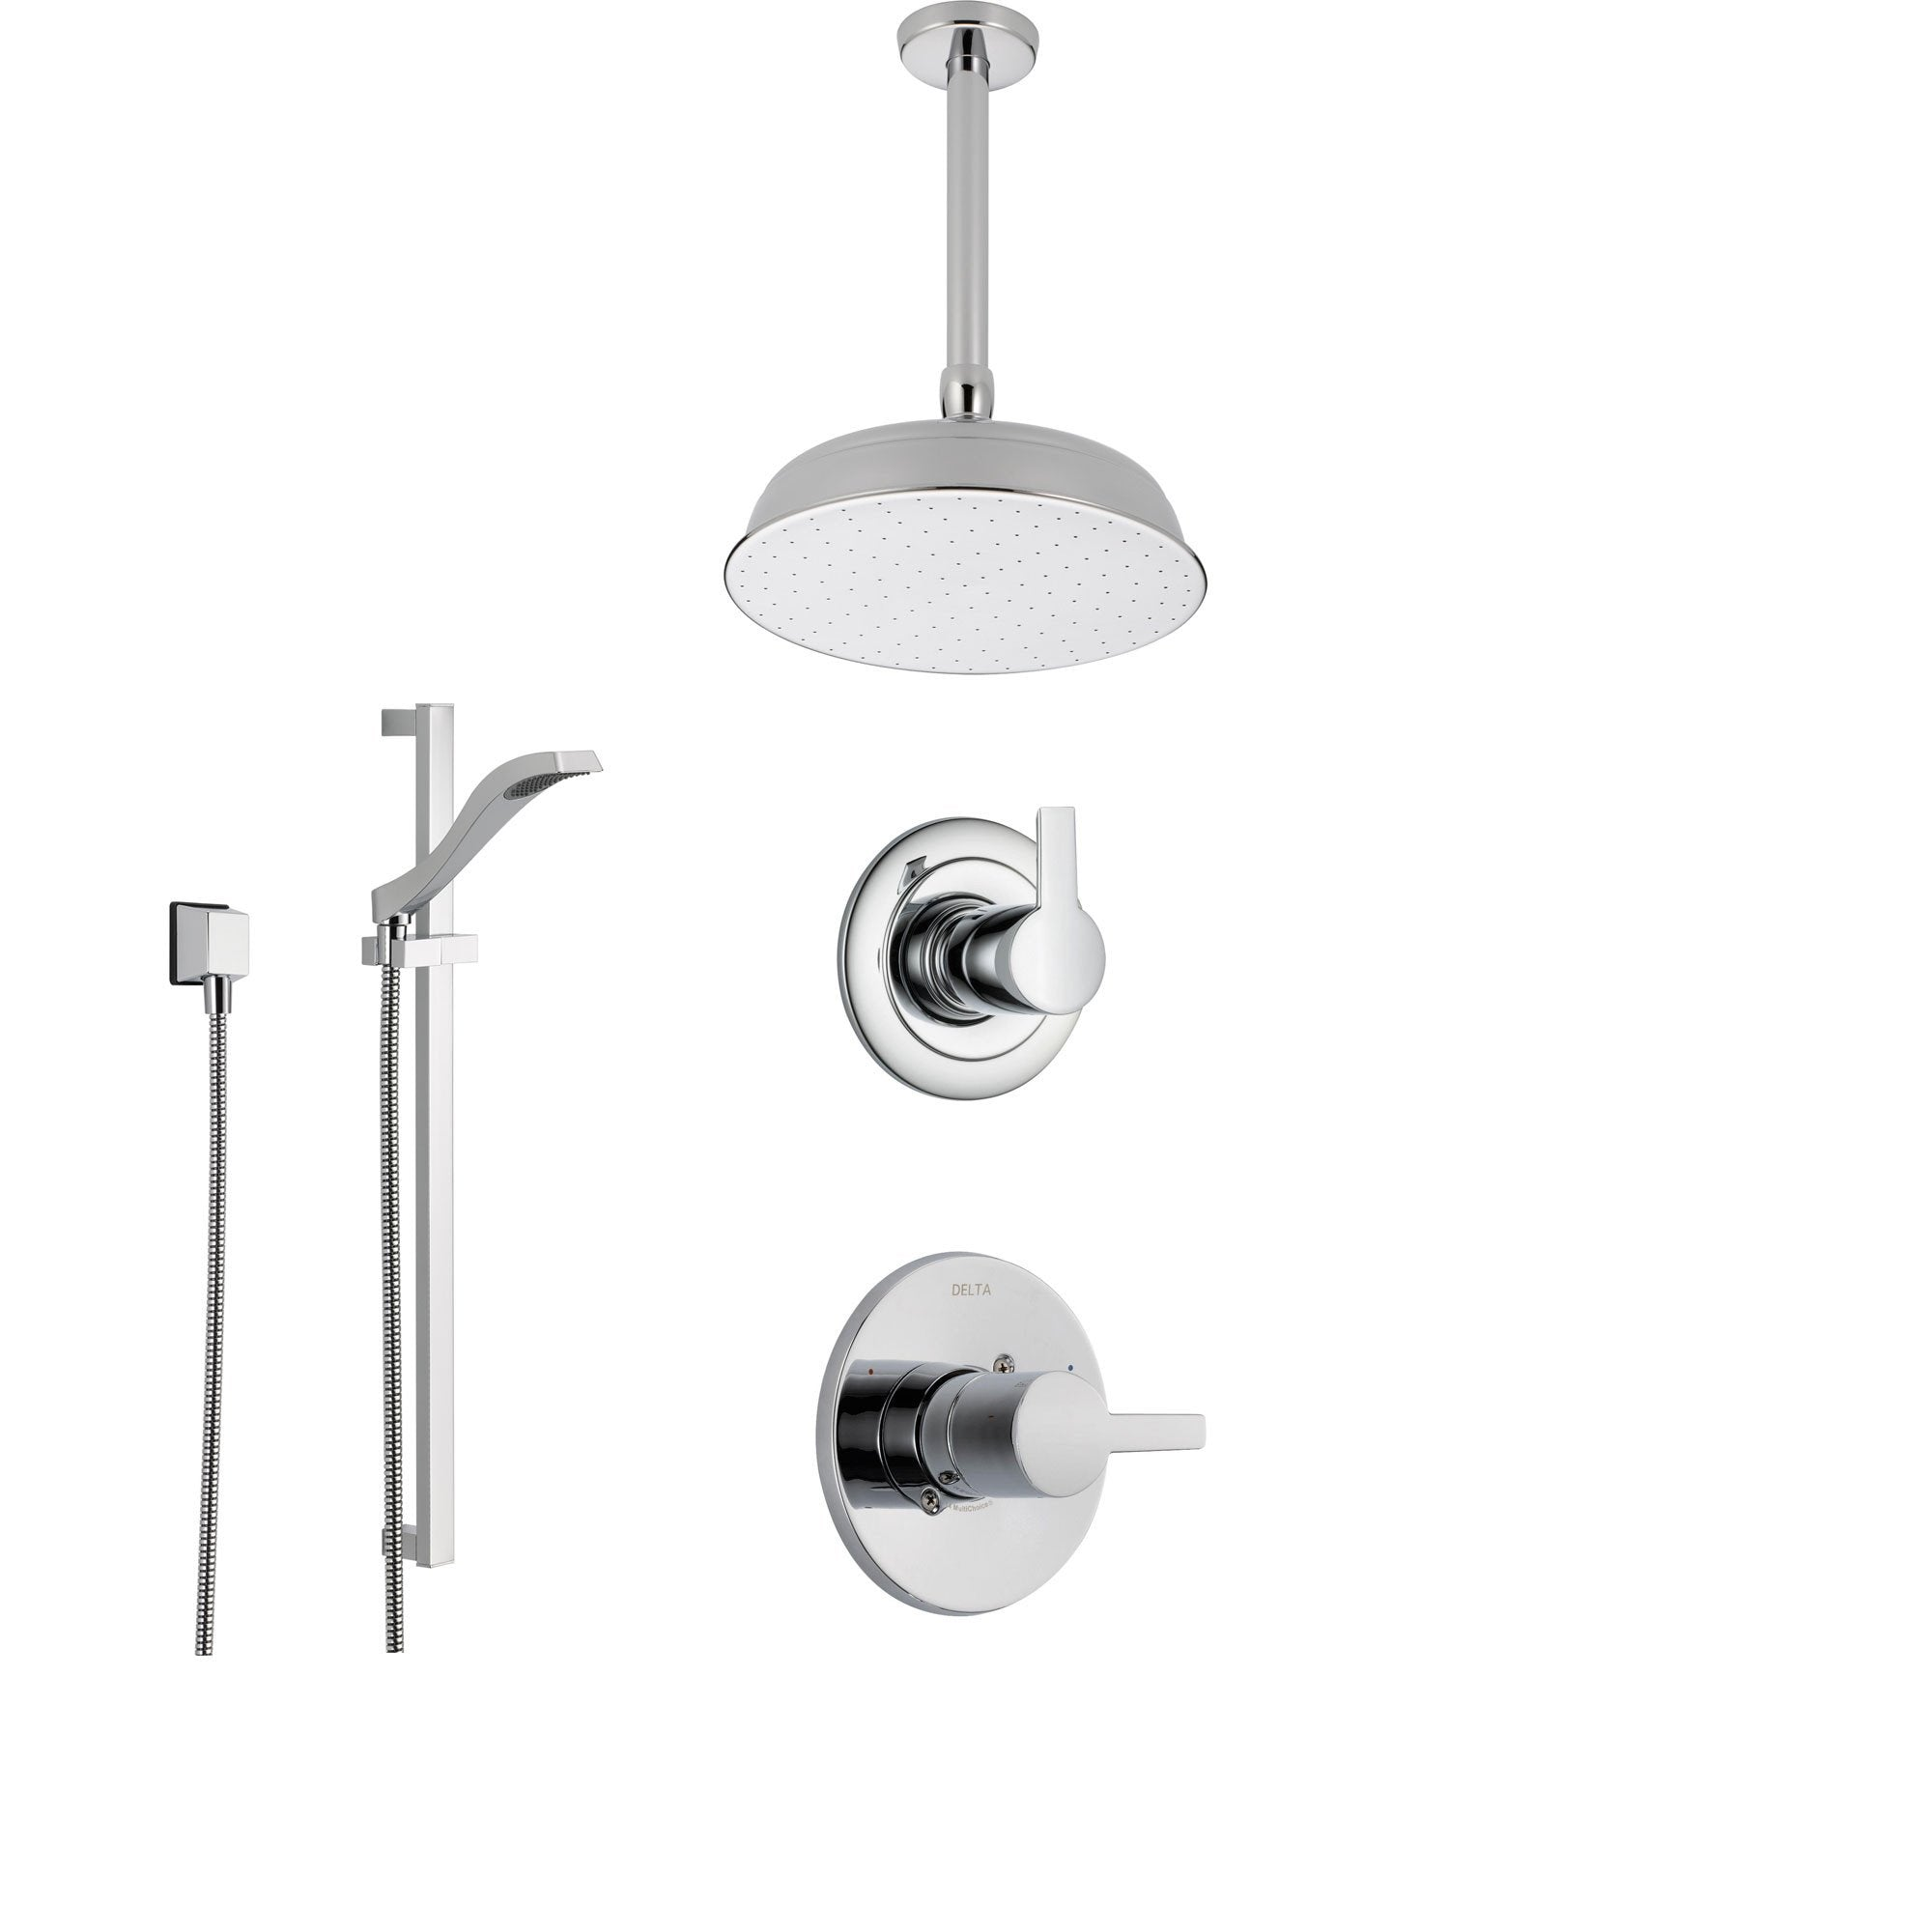 Delta Compel Chrome Shower System with Normal Shower Handle, 3-setting Diverter, Ceiling Mount Large Rain Showerhead, and Handheld Spray SS146181